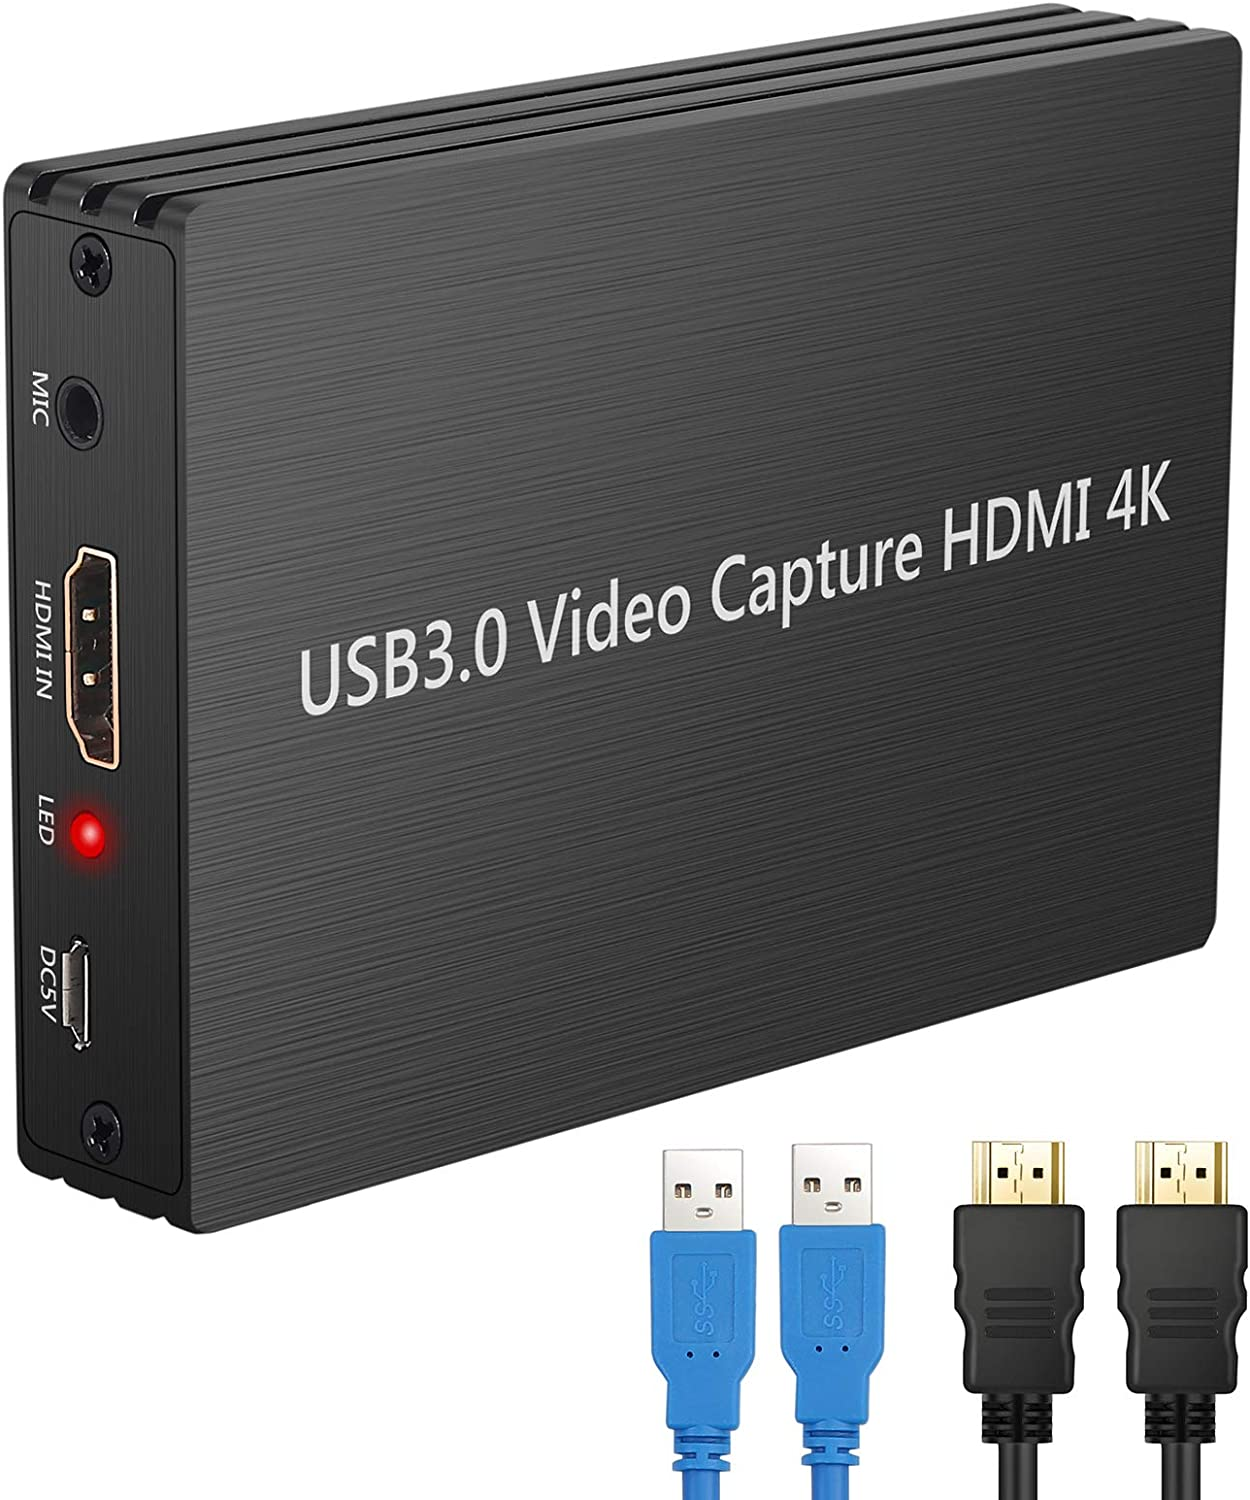 LiNKFOR HDMI Video Capture Card USB 3.0 Live Streaming Game Recorder Video Capture Device Video Recording Box with HDMI Loop-Out,Support 4K 1080P Mic Input and 3.5MM Audio for Windows Mac OS Black